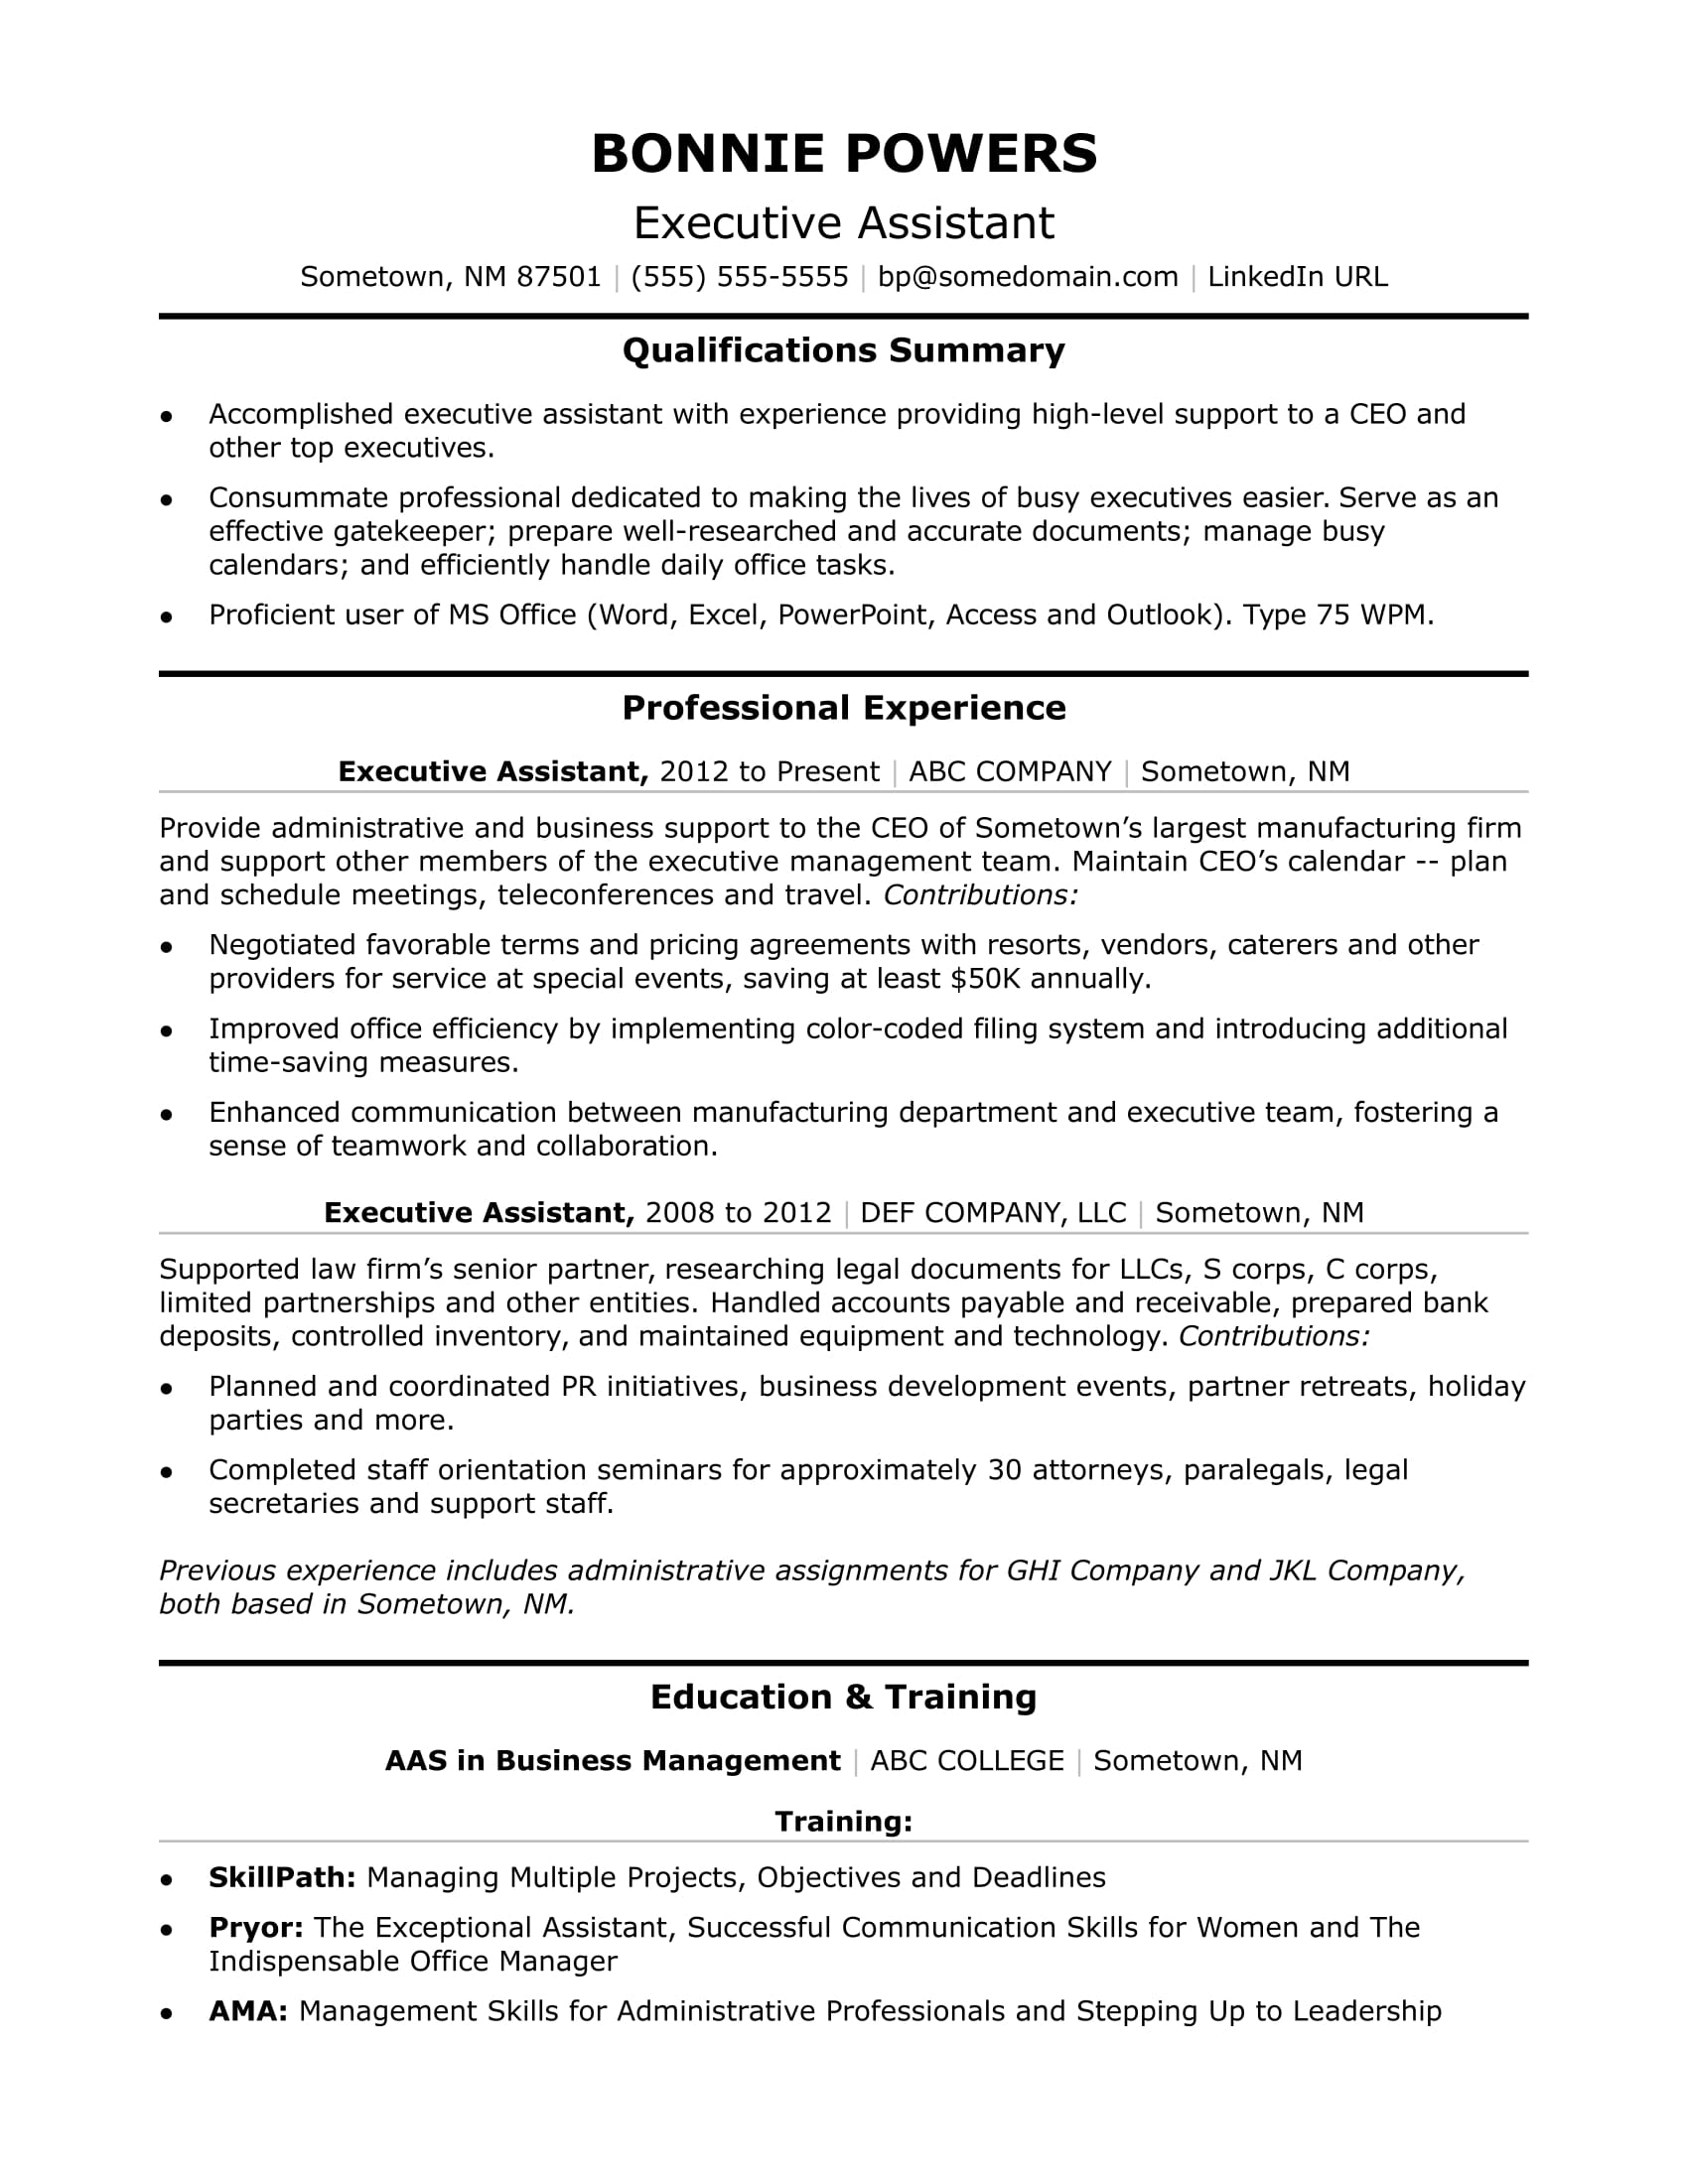 executive administrative assistant resume sample monster example of summary on for Resume Example Of Summary On Resume For Administrative Assistant